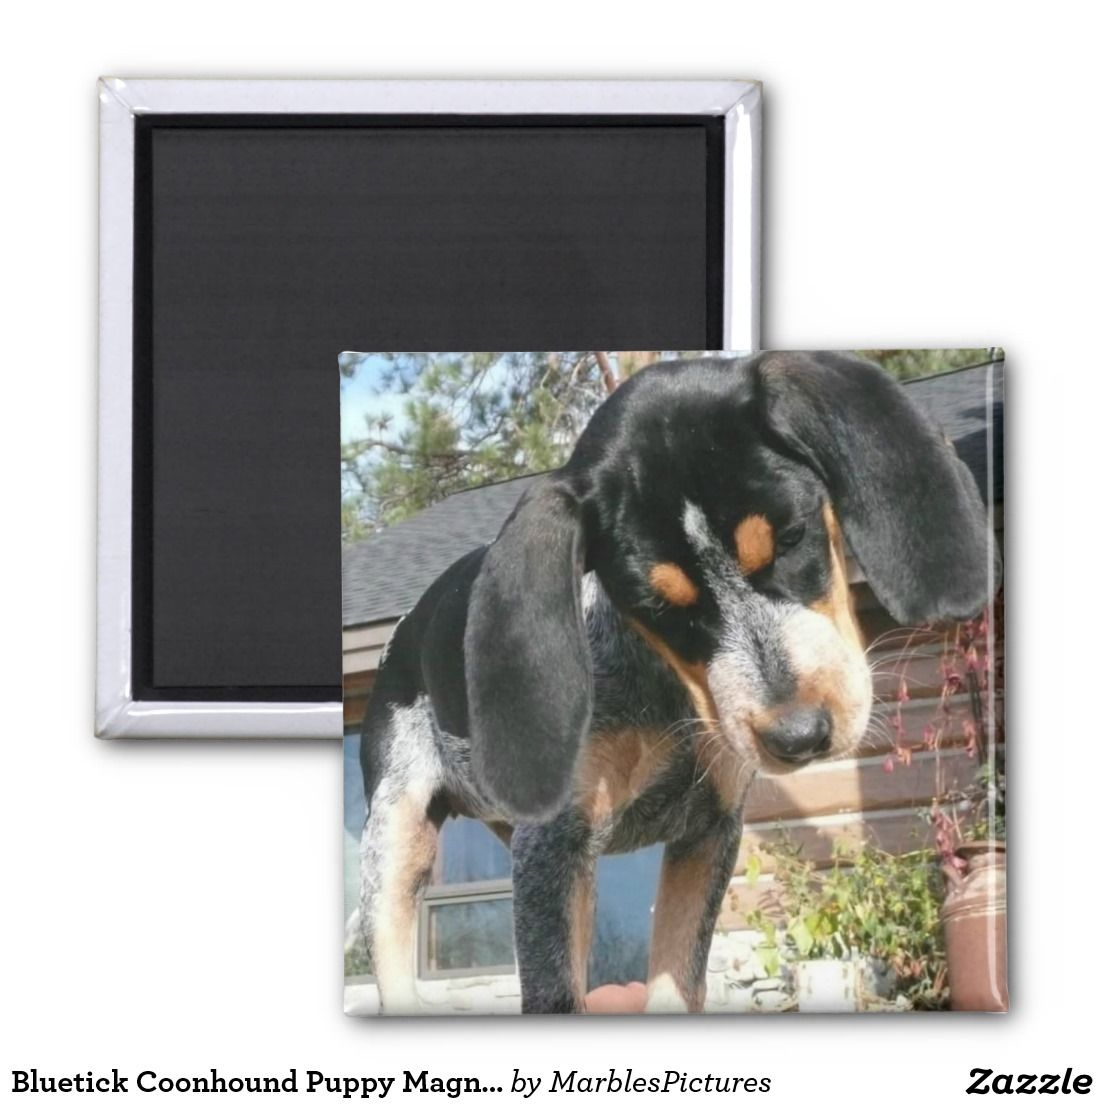 Bluetick coonhound puppy with images